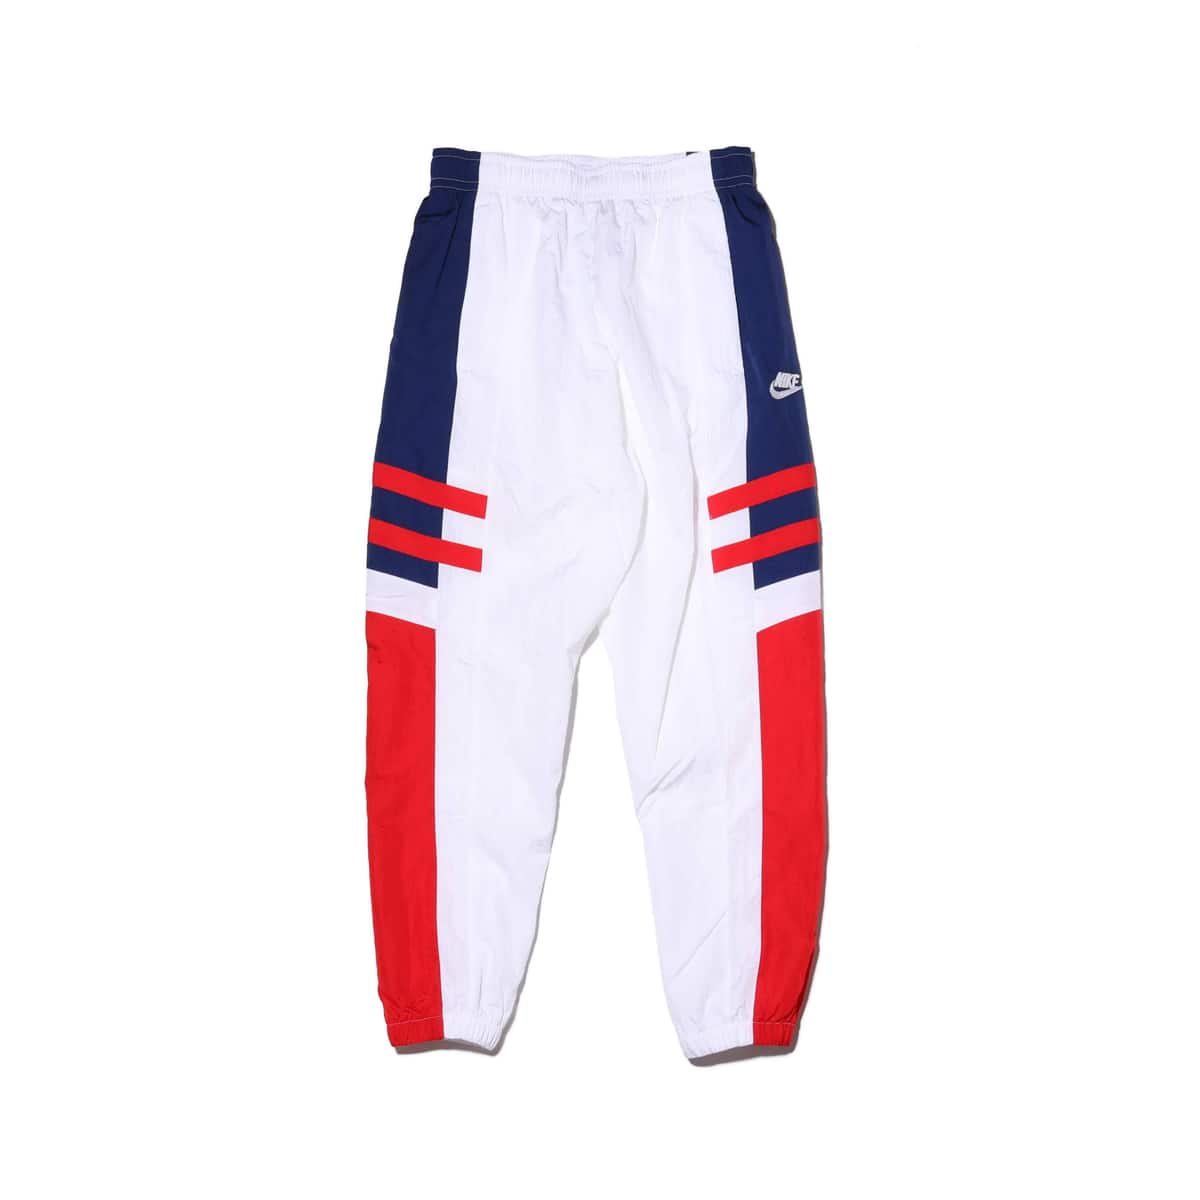 NIKE AS M NSW RE-ISSUE PANT WVN WHITE/BLUE VOID/UNIVERSITY RED/WHITE 20SP-S_photo_large